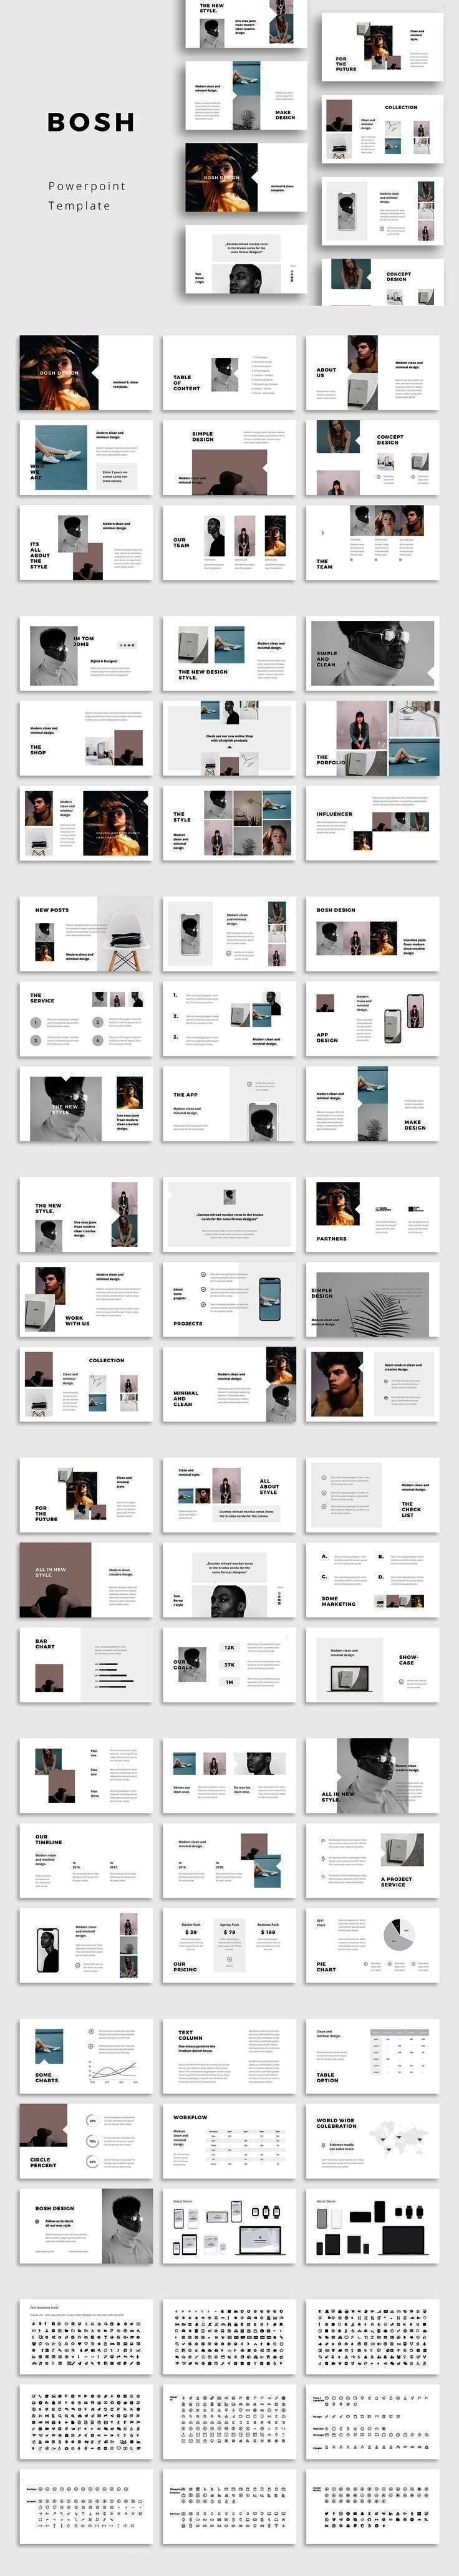 Powerpoint Template BOSH  Powerpoint Template by PixaSquare on creativemarket minimalBOSH  Powerpoint Template by PixaSquare on creativemarket minimal Xbox Store by Em 31...